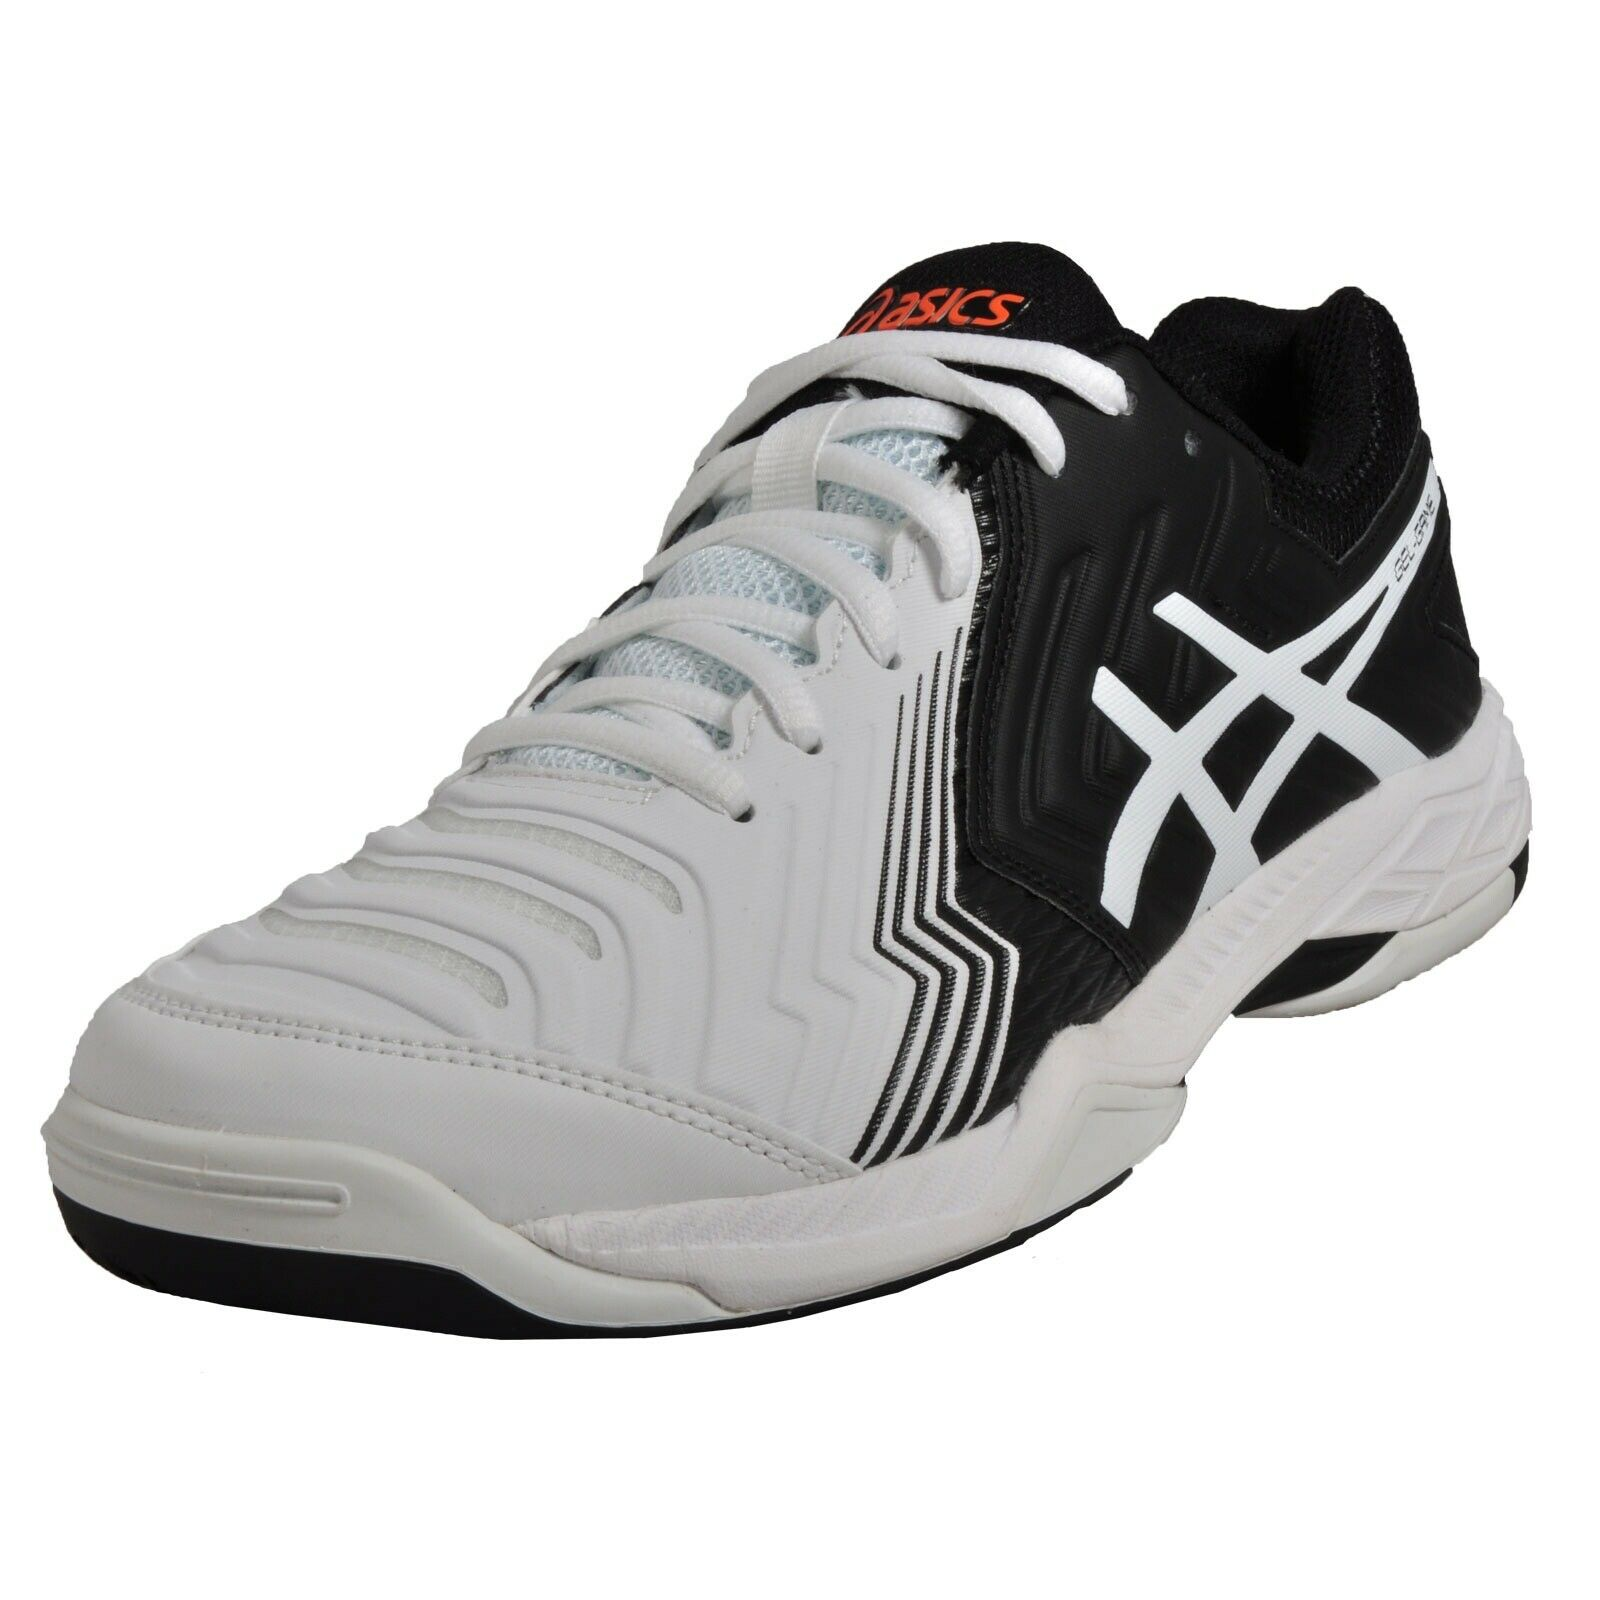 finest selection ebc62 47b0a Gel Game 6 E705Y 0190 Black Sports Trainers White Asics nujggv6577-Men s  Trainers